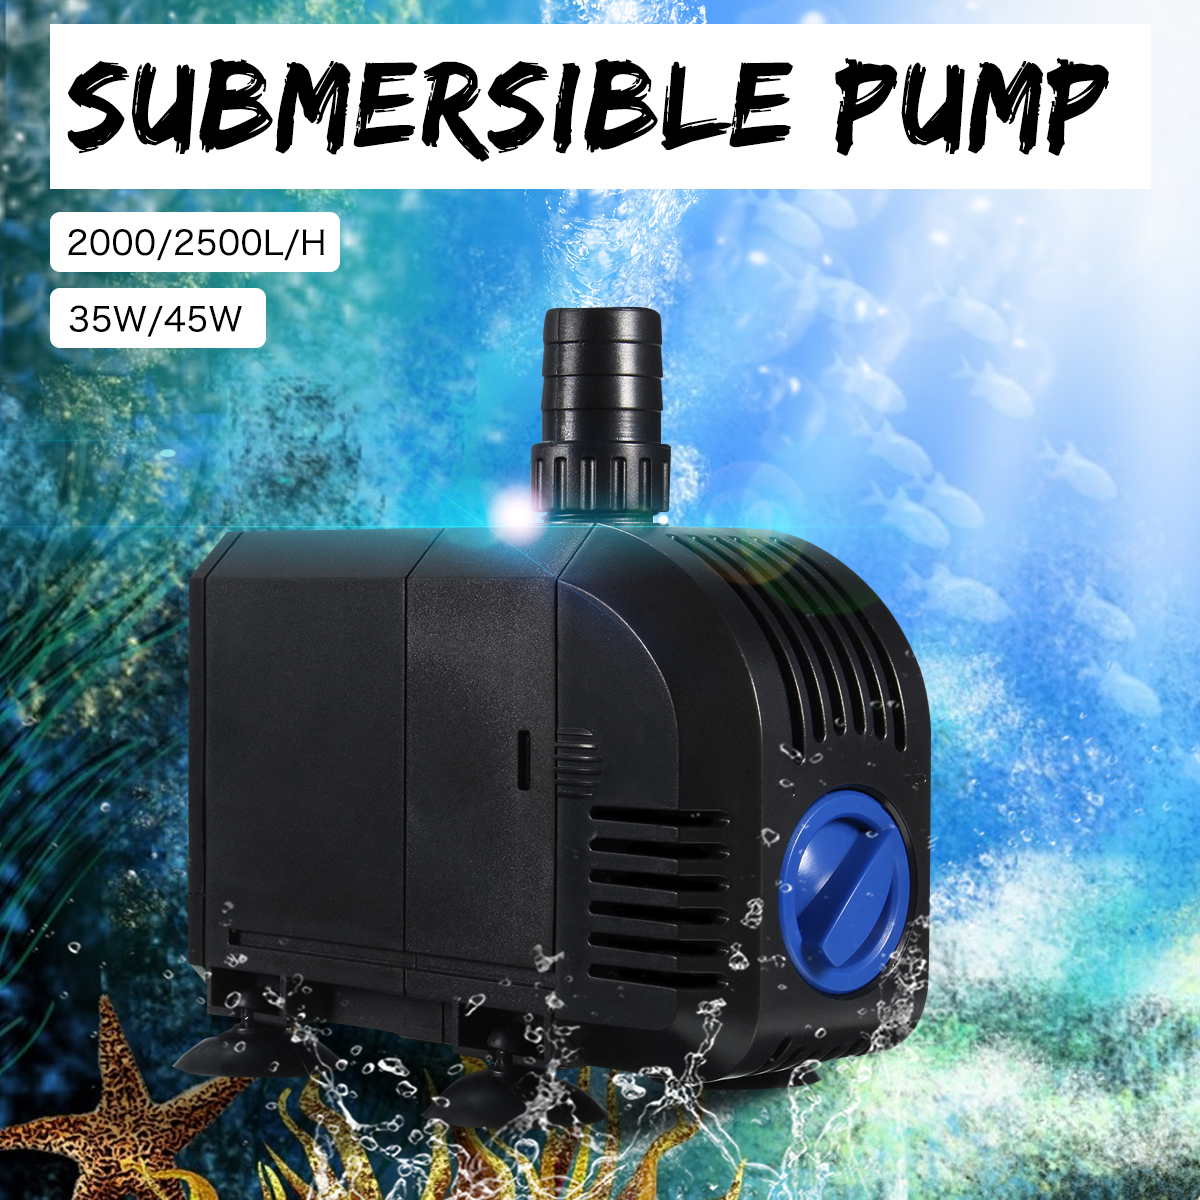 35W/45W Waterproof Multi-Functional Submersible Water Pump for Aquarium Fountain Fish Tank Pool Pond Water Sump Filter Pump free shipping clb series submersible water pump for pond